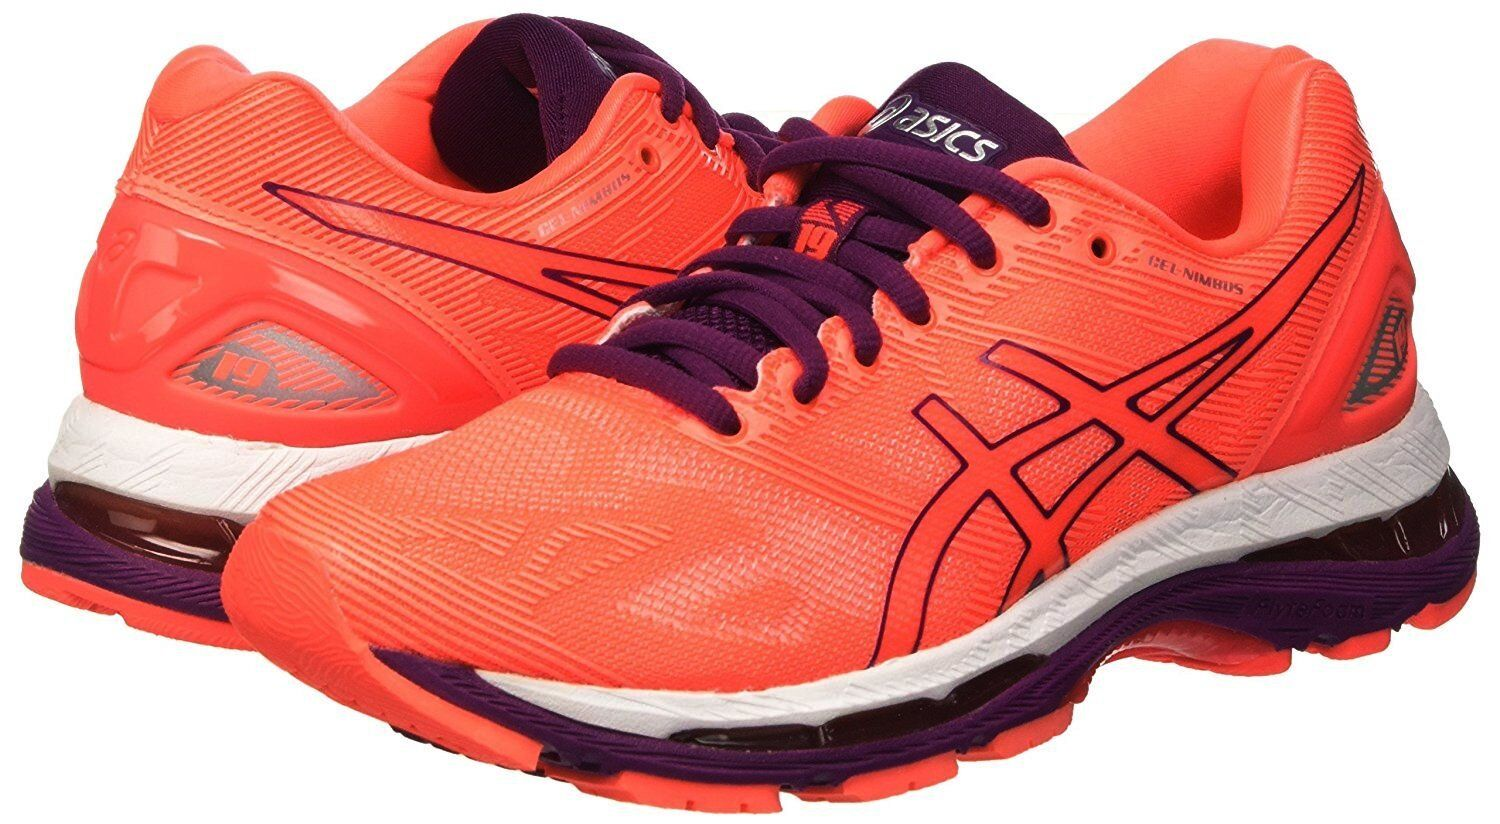 NEW WOMENS ASICS GEL-NIMBUS 19 RUNNING TRAINING SHOES - 6   EUR 37 -  160 CORAL